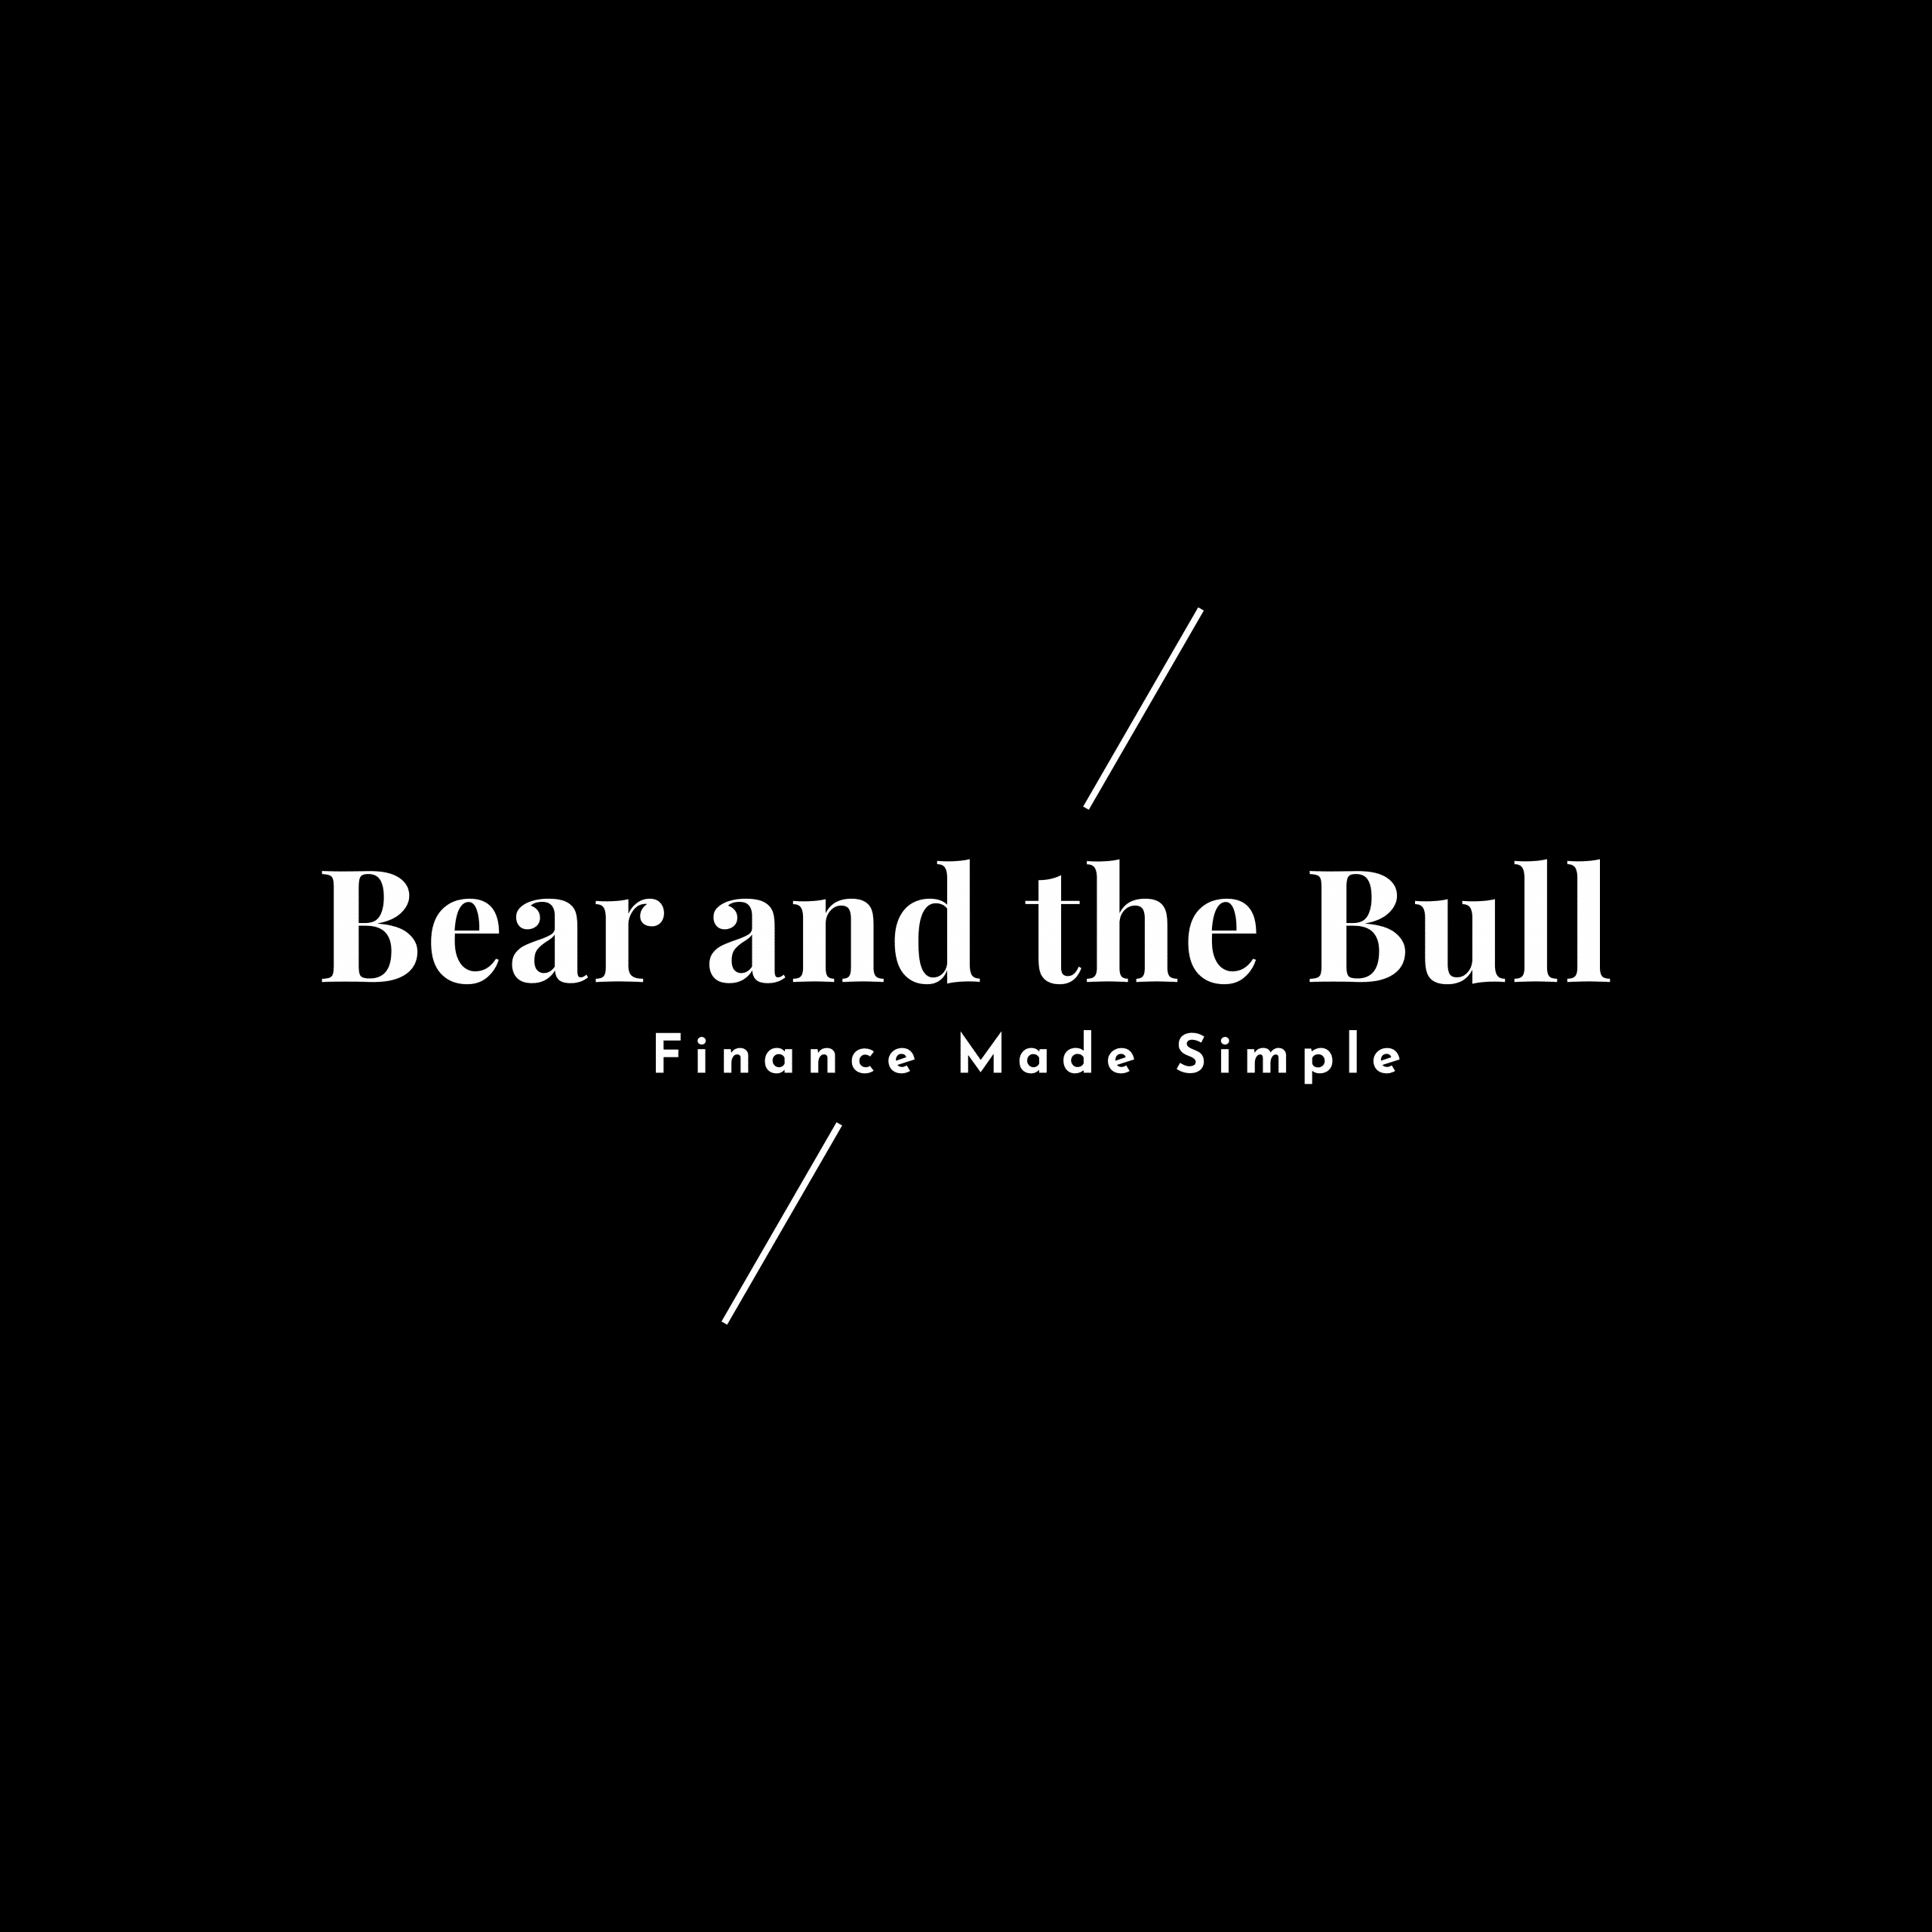 Bear and the Bull